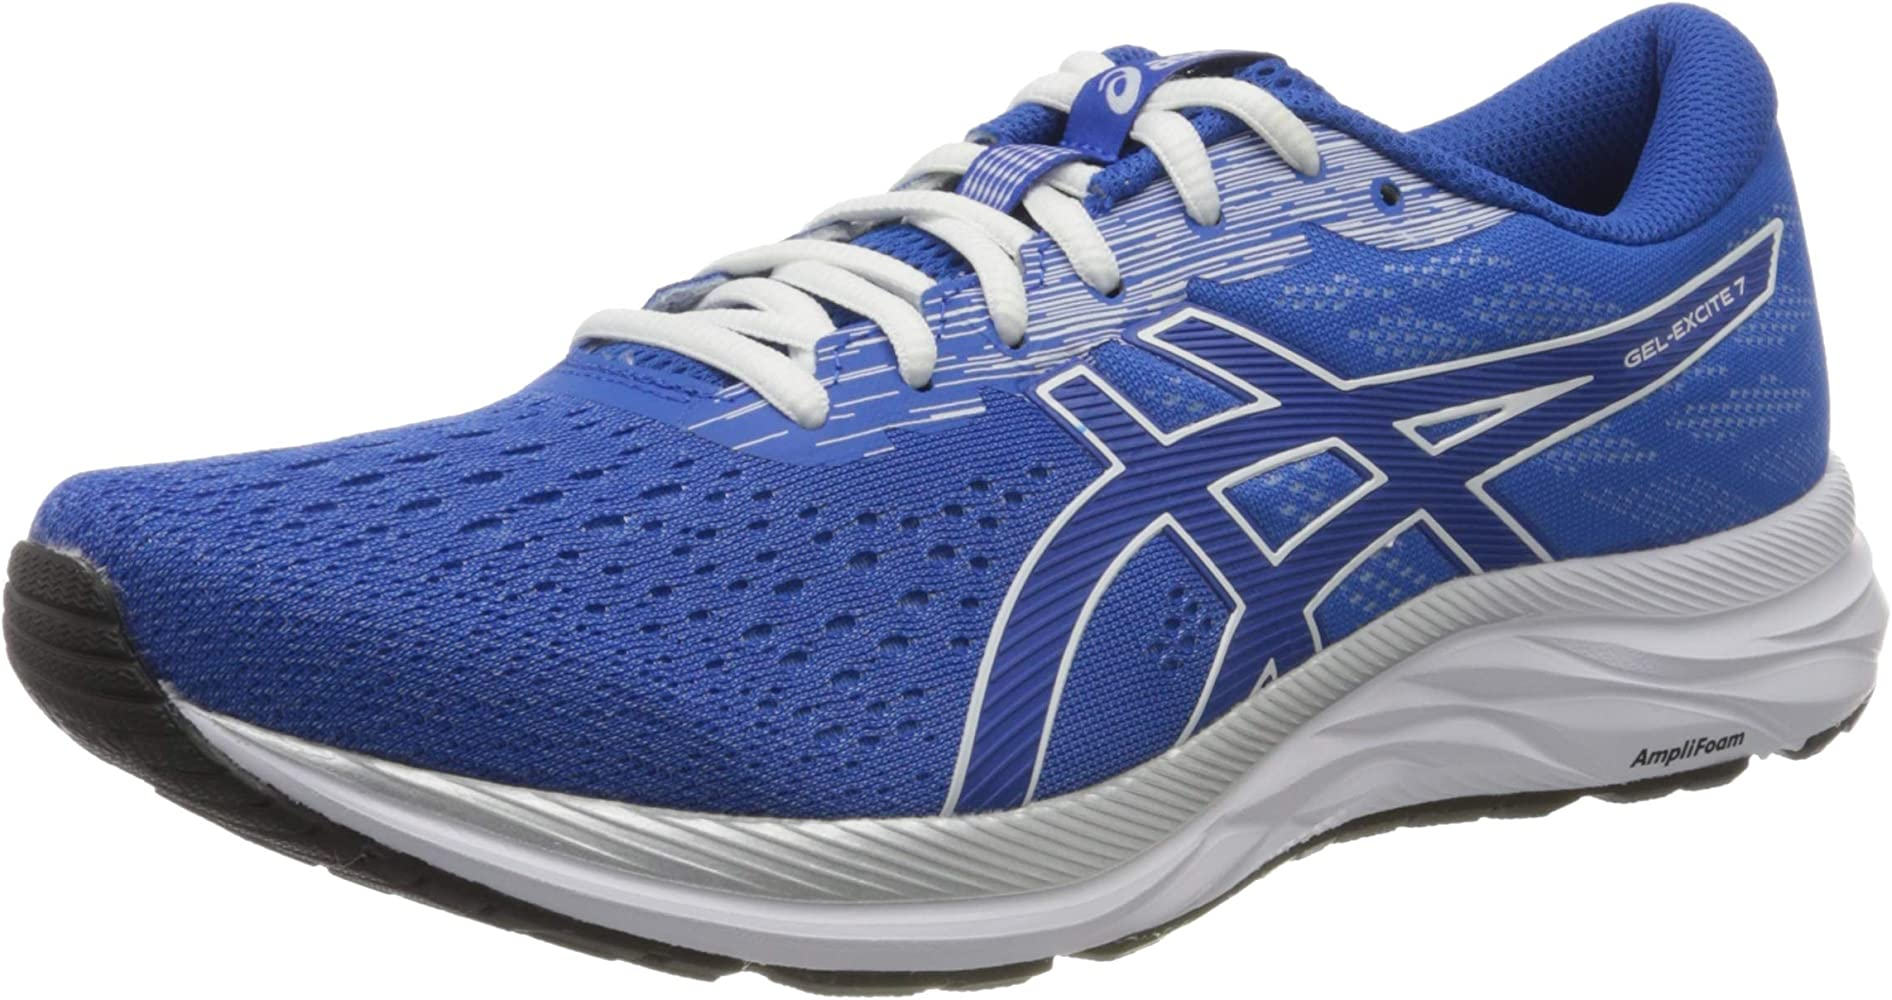 Men's ASICS GEL Excite 7 Running Sneaker